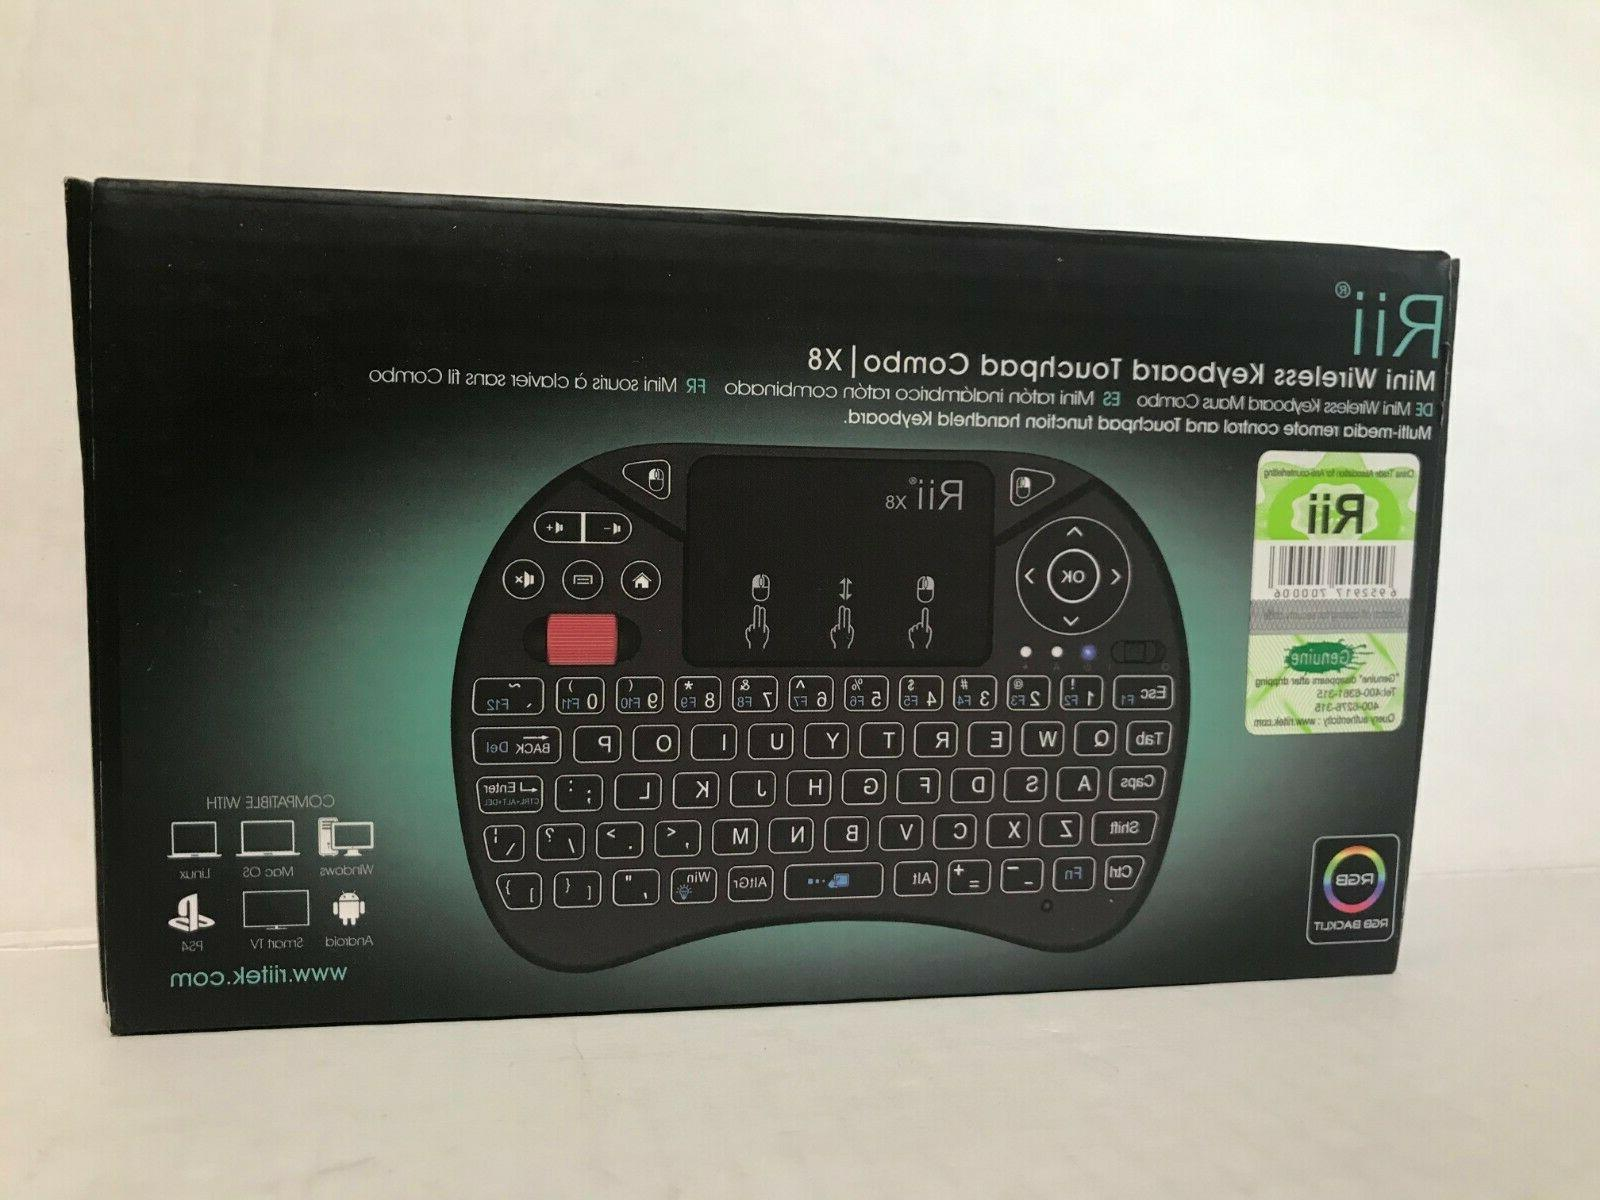 new x8 mini wireless keyboard with colorful